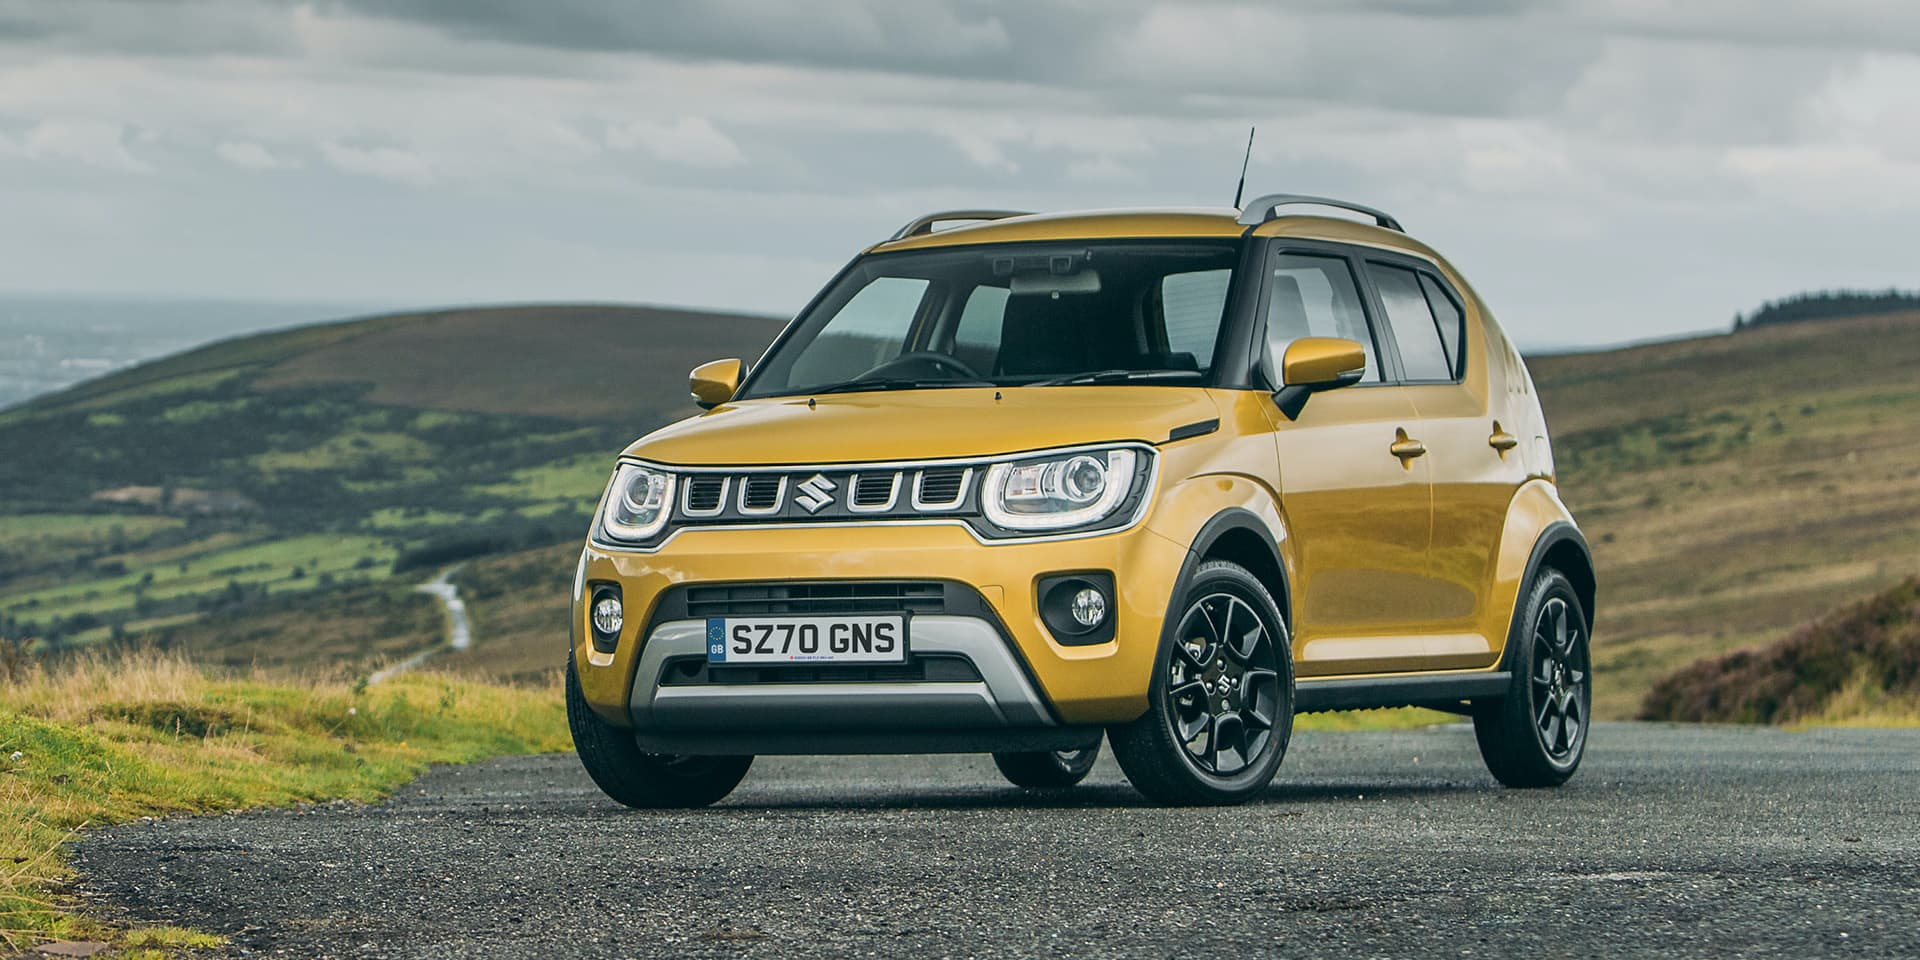 Suzuki Ignis (2017 onwards) – Expert Rating